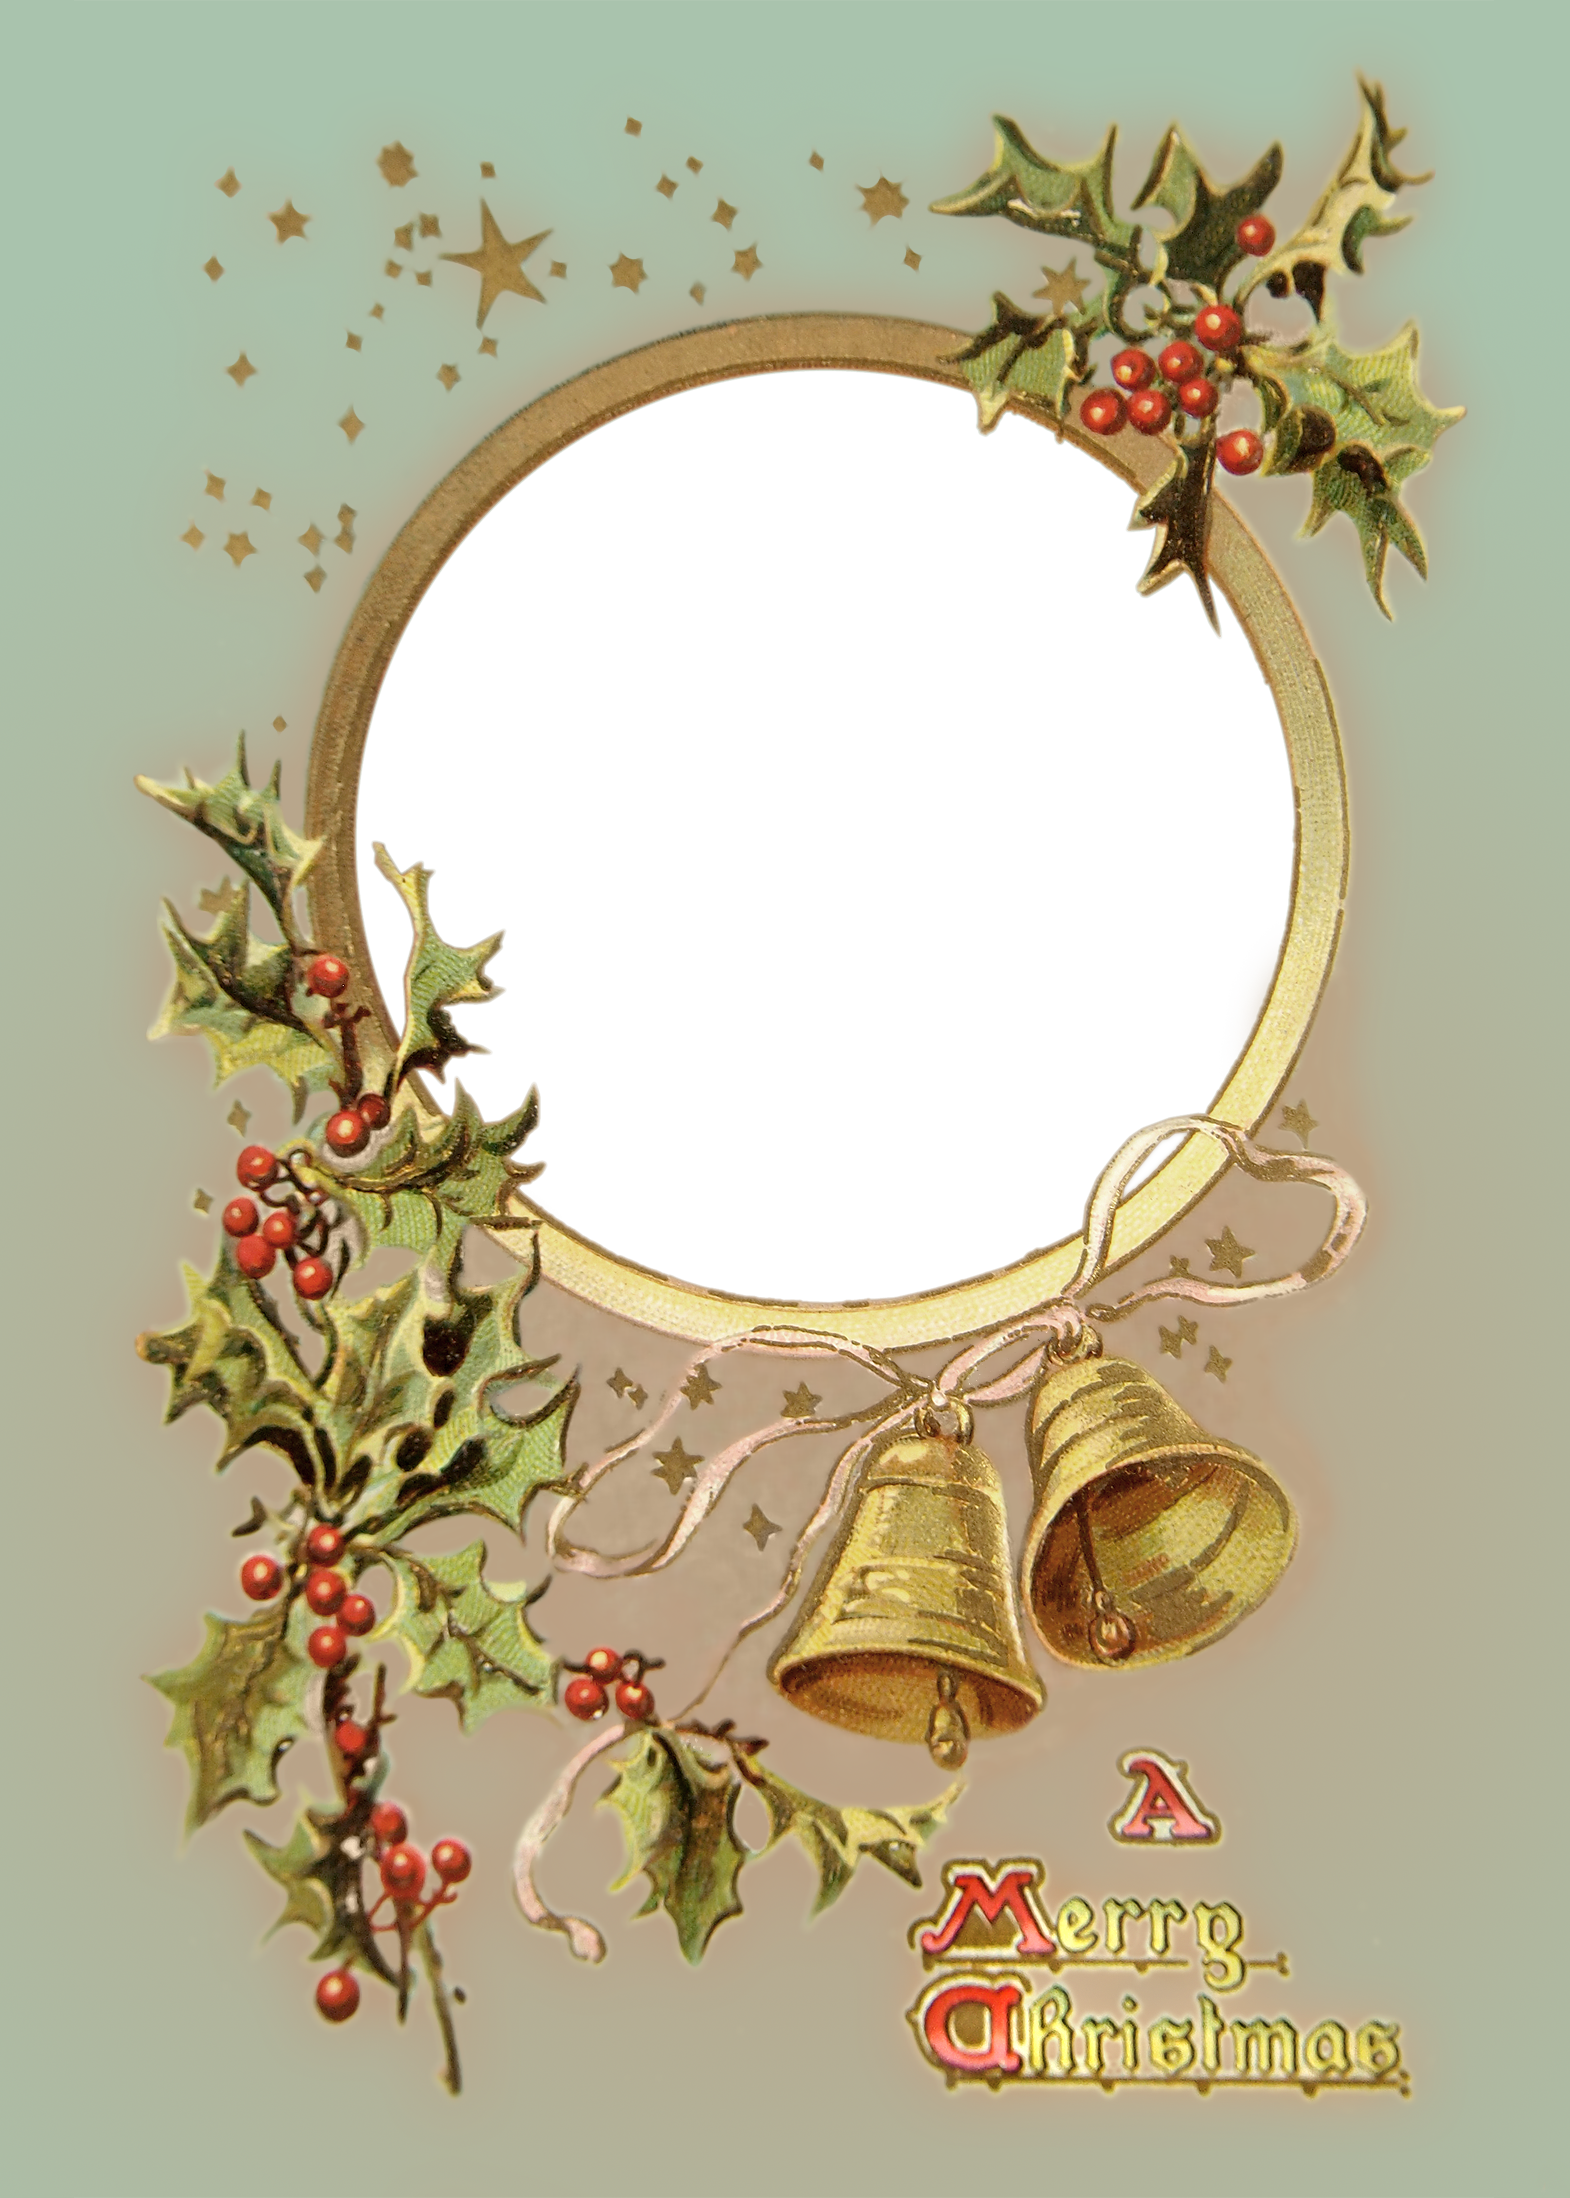 Free png christmas frames. Collection of vintage